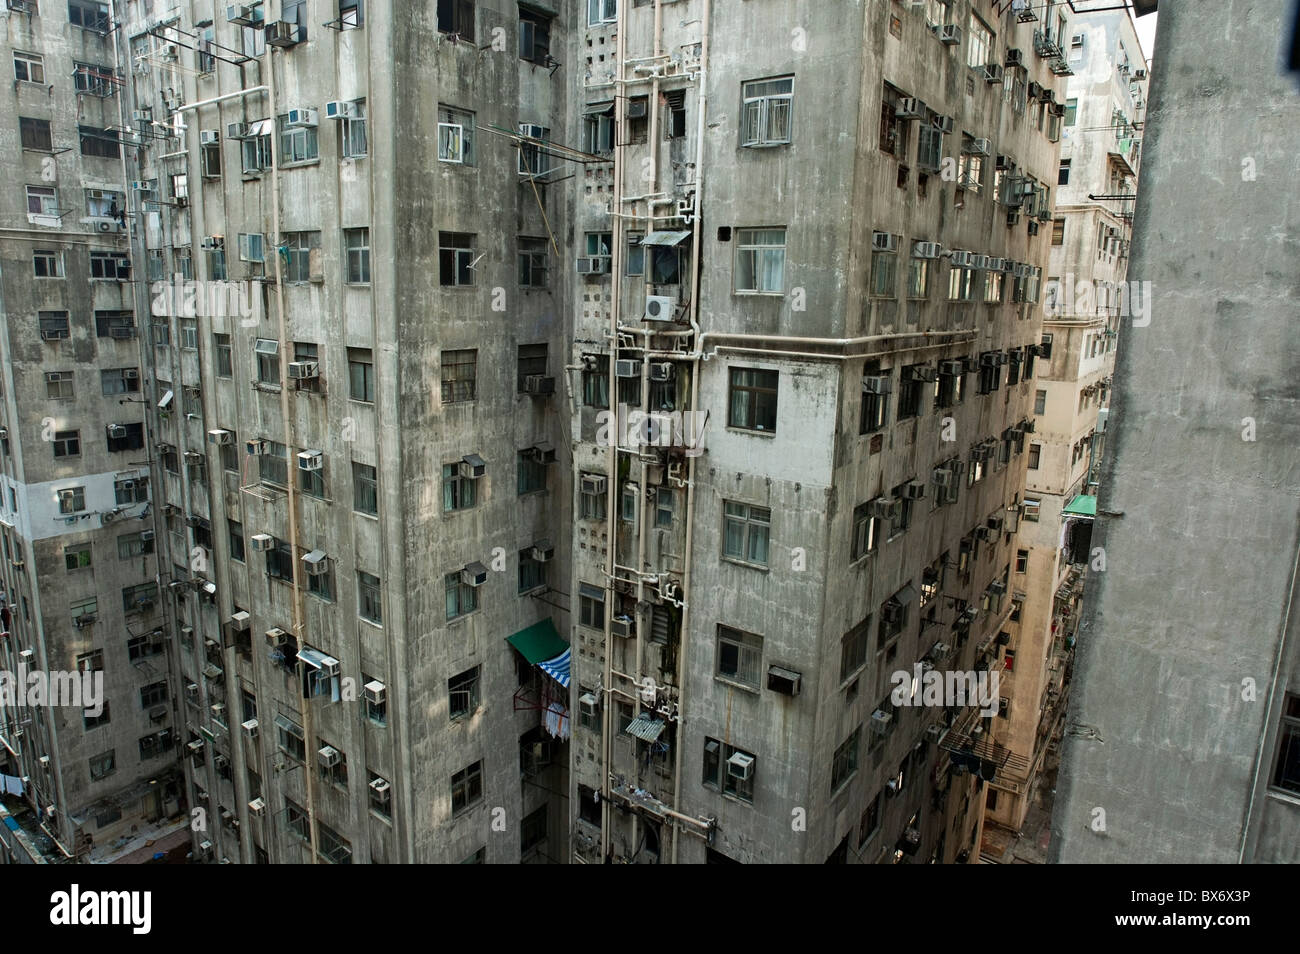 small old apartment building.  Old run down concrete high rise apartment buildings in Kowloon Hong Kong apartments close up at day Stock Photo Royalty